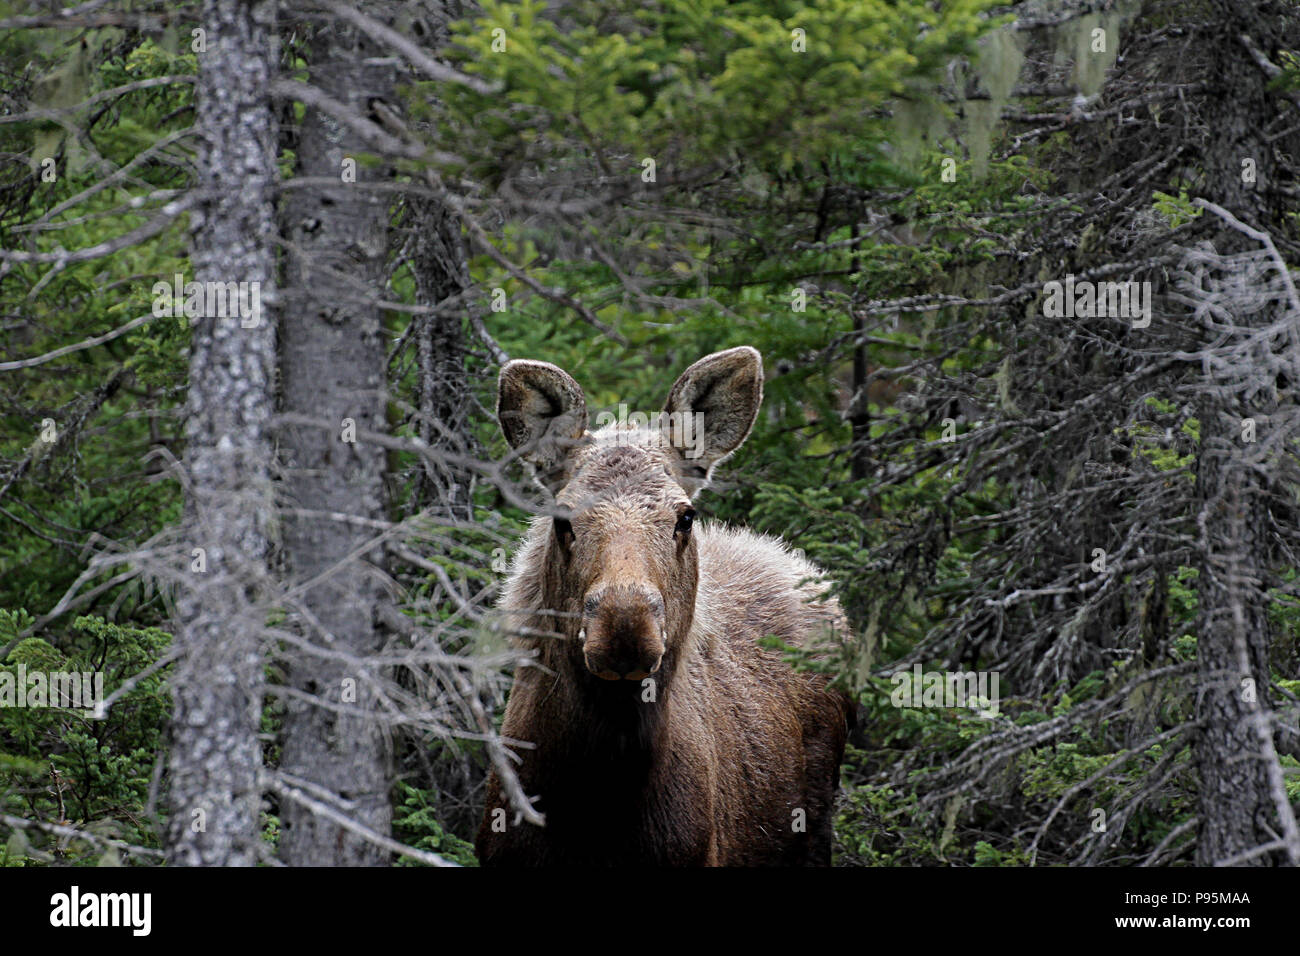 Wildlife Moose Calf Travelogue Travel Newfoundland Canada Landscapes And Scenic